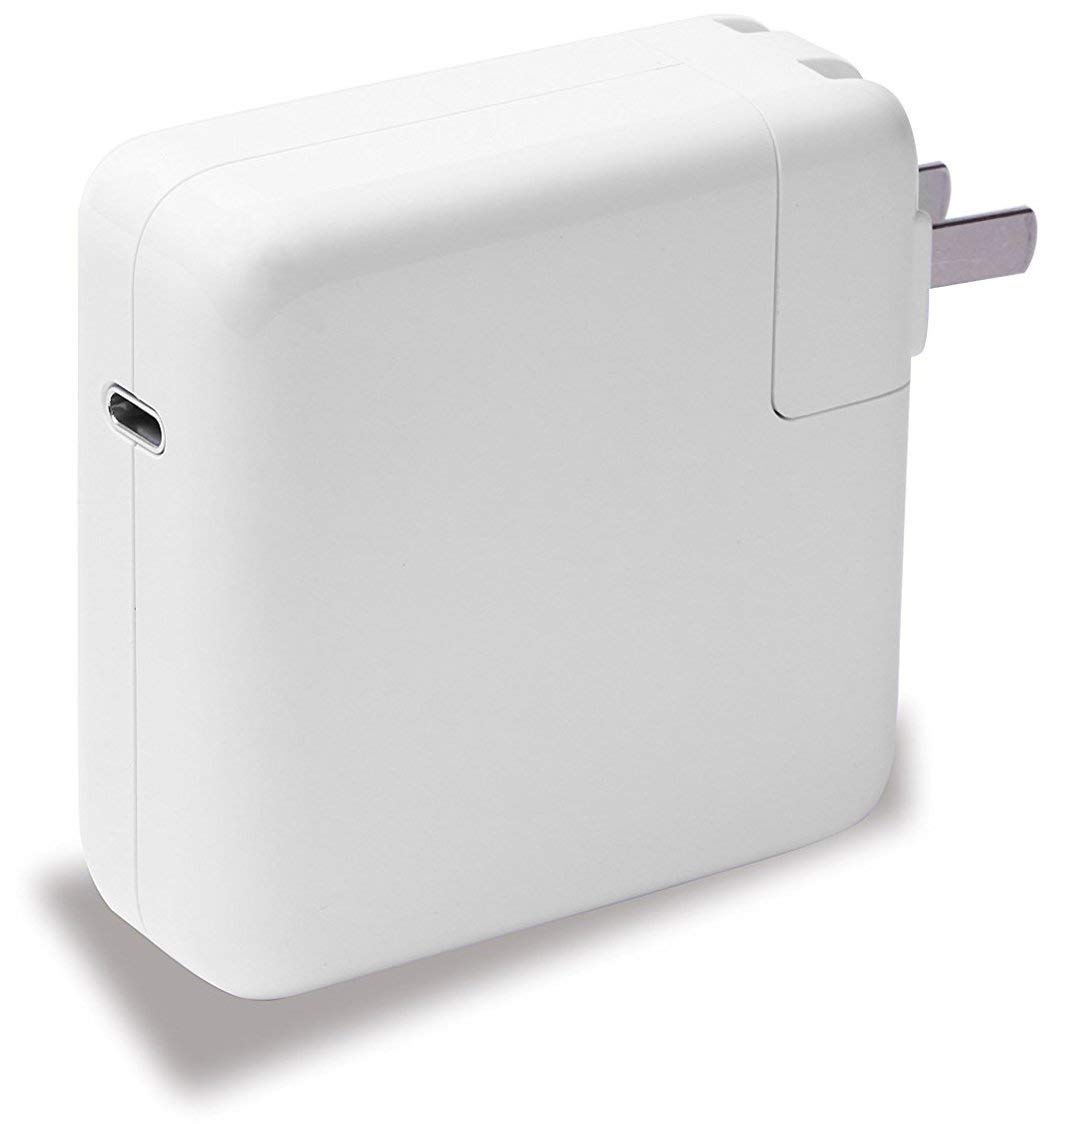 61W USB-C Power Adapter Charger, with USB-C to USB-C Charge Cable by E EGOWAY (Image #3)